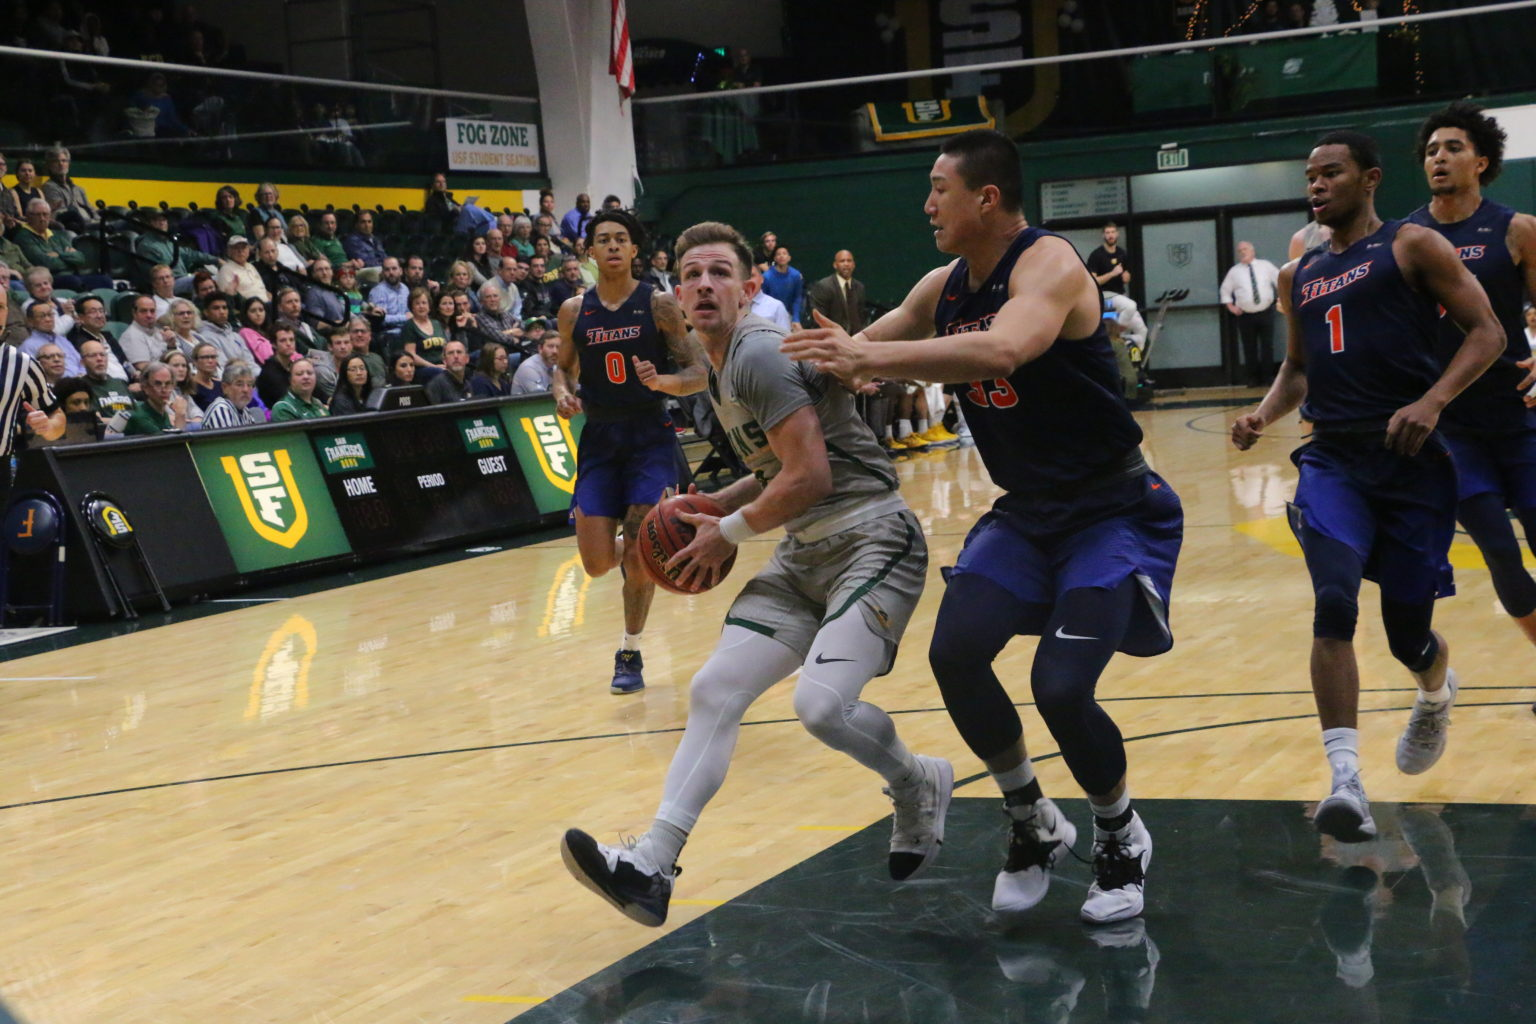 San Francisco guard Frankie Ferrari drives towards the basket in the first half of the Dons' 68-54 win over Cal State Fullerton on Dec. 16, 2018 at War Memorial Gym in San Francisco. (Ryan Gorcey / S.F. Examiner)